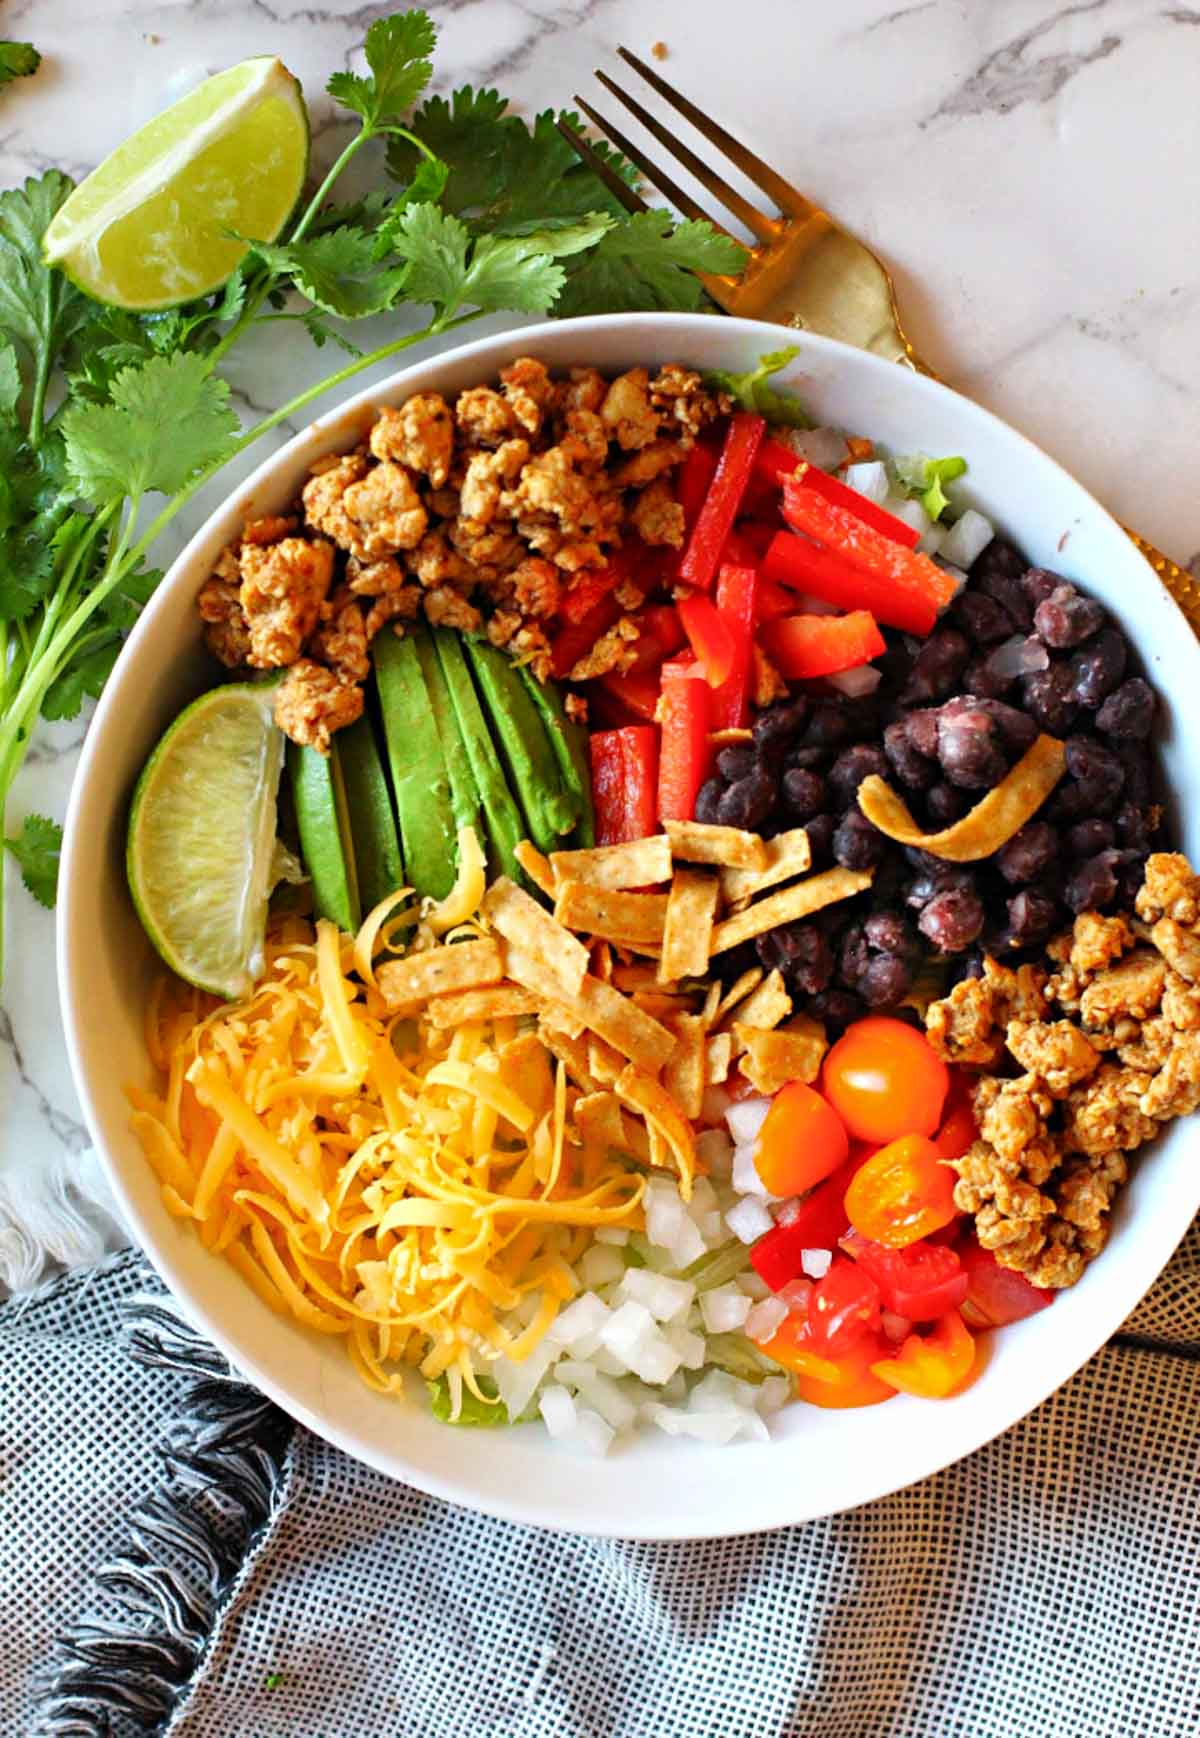 Chicken burrito bowl made with ground chicken breast served over rice and topped with cheese, black beans, avocado, red bell pepper, onions and cherry tomatoes.